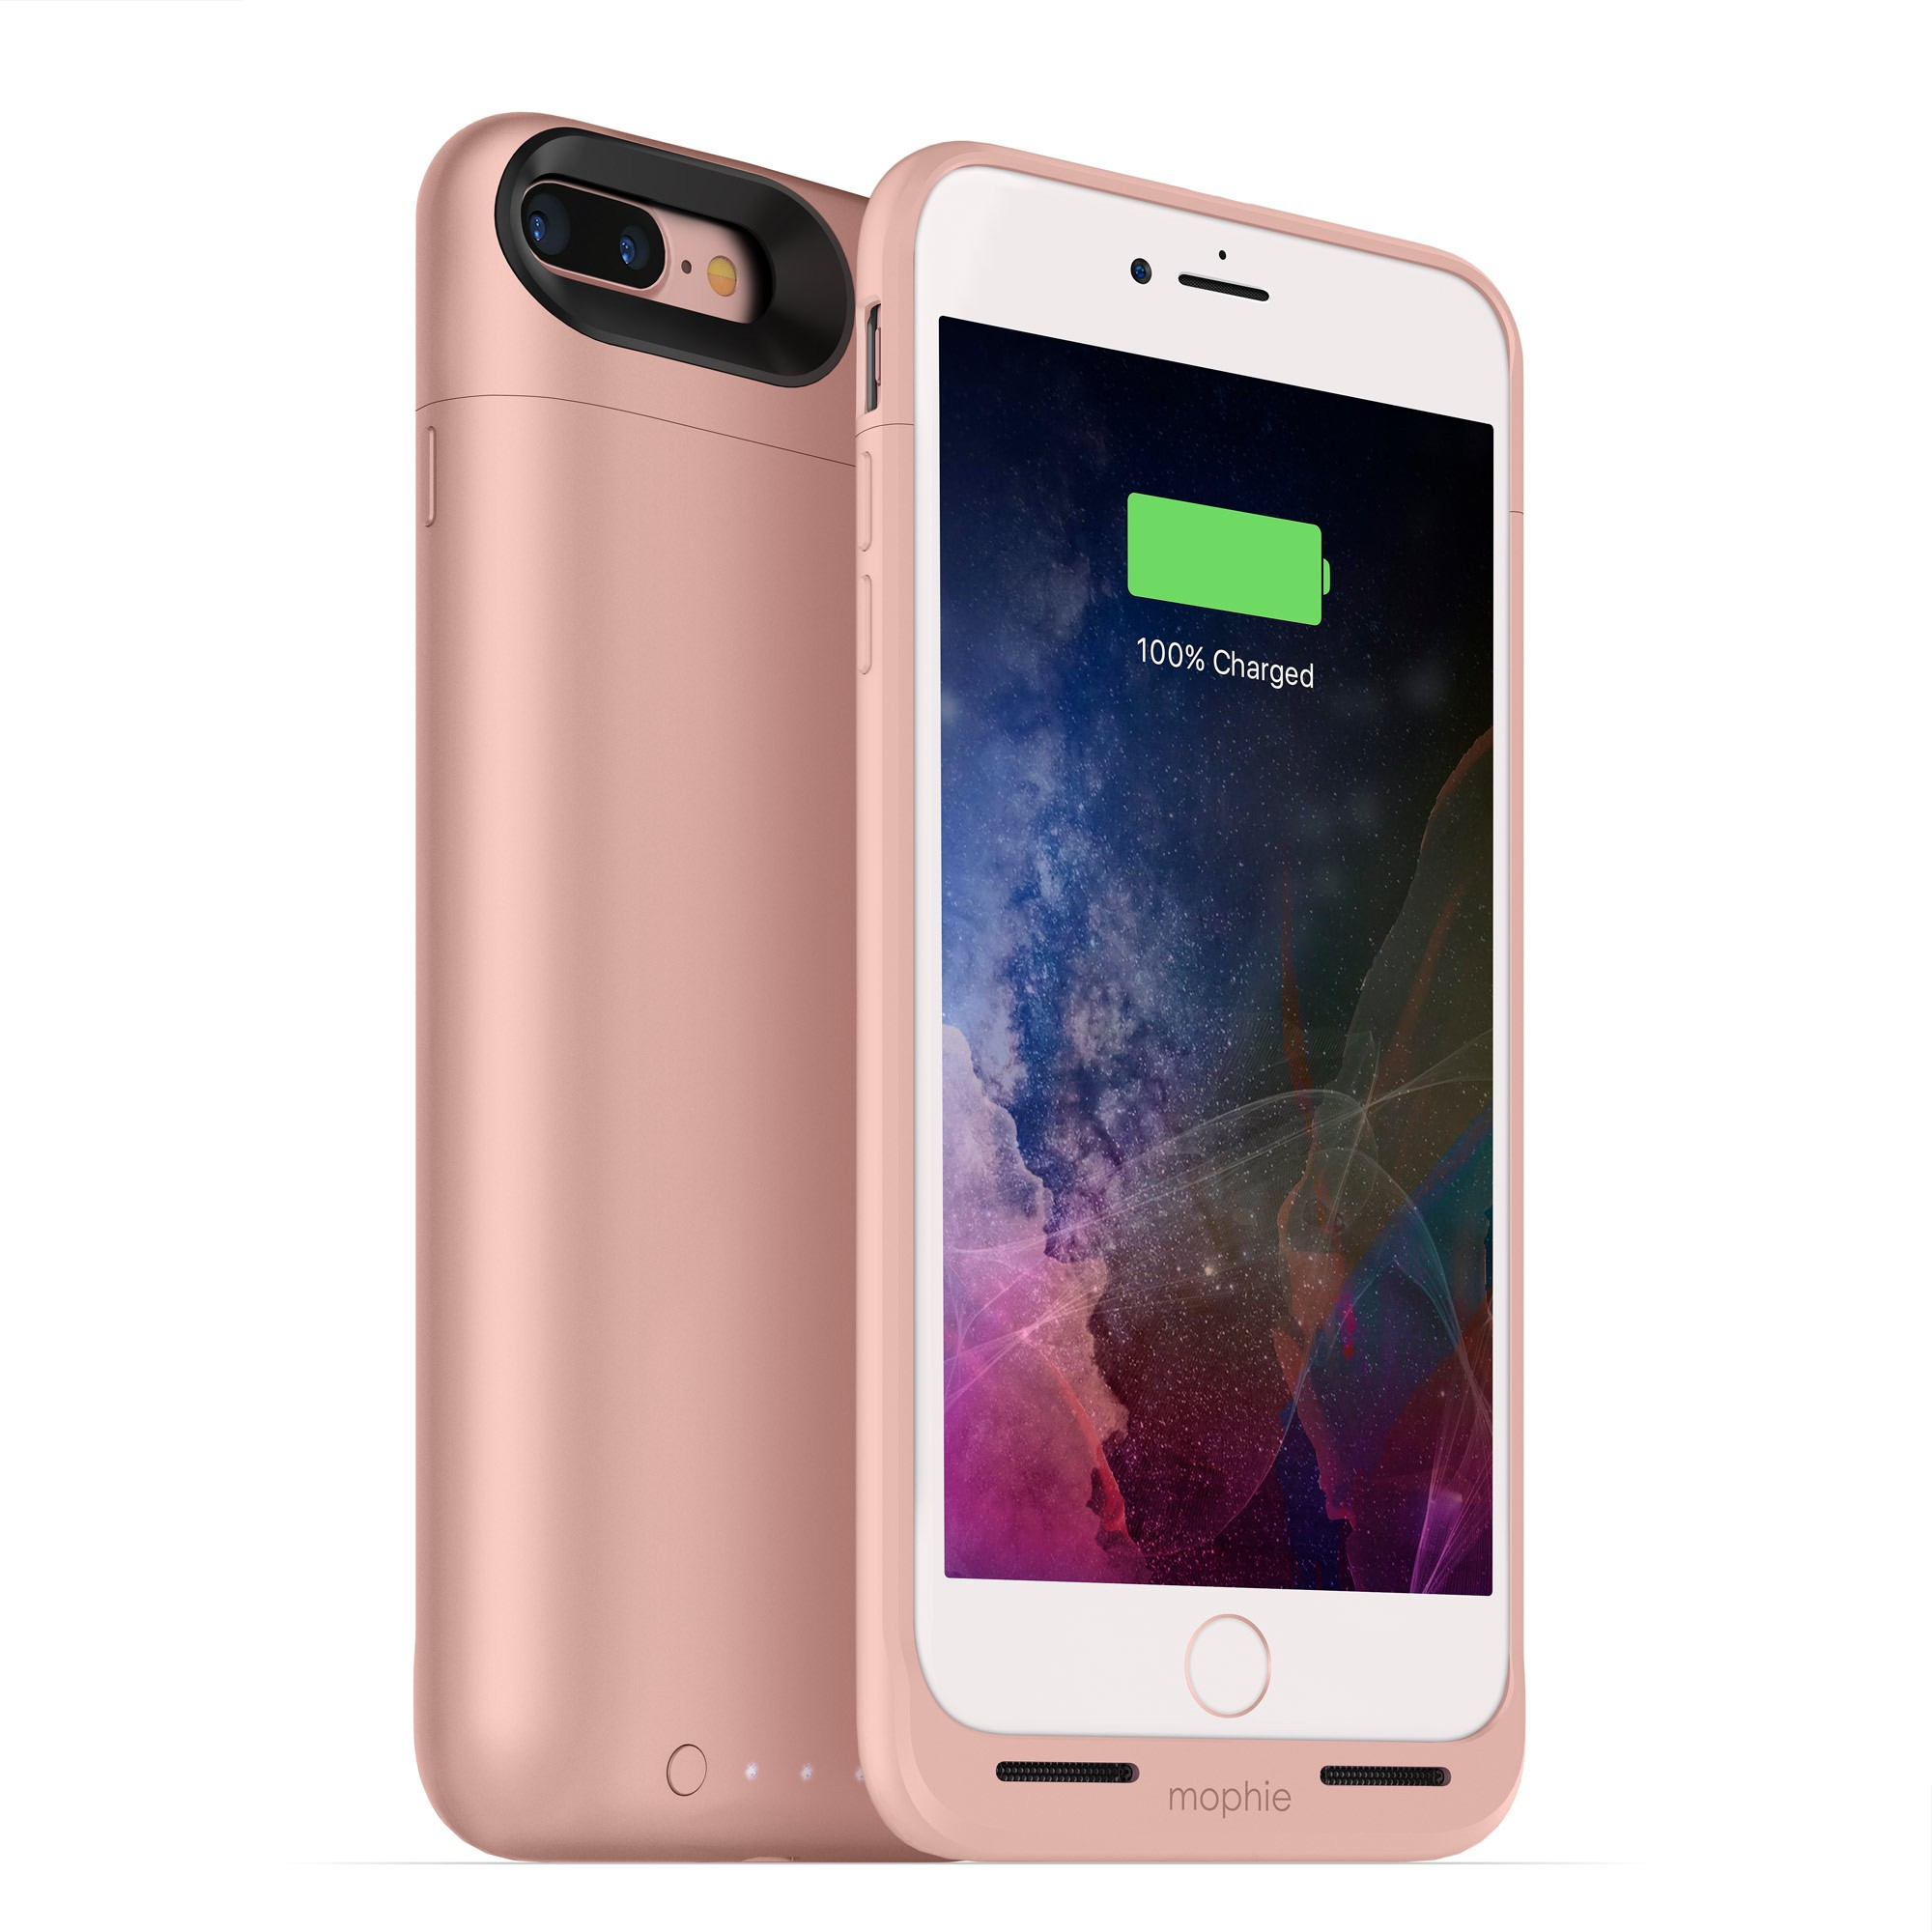 Nabíjecí pouzdro pro Apple iPhone 7 PLUS - Mophie, Juice Pack Air 2420mAh Rose Gold